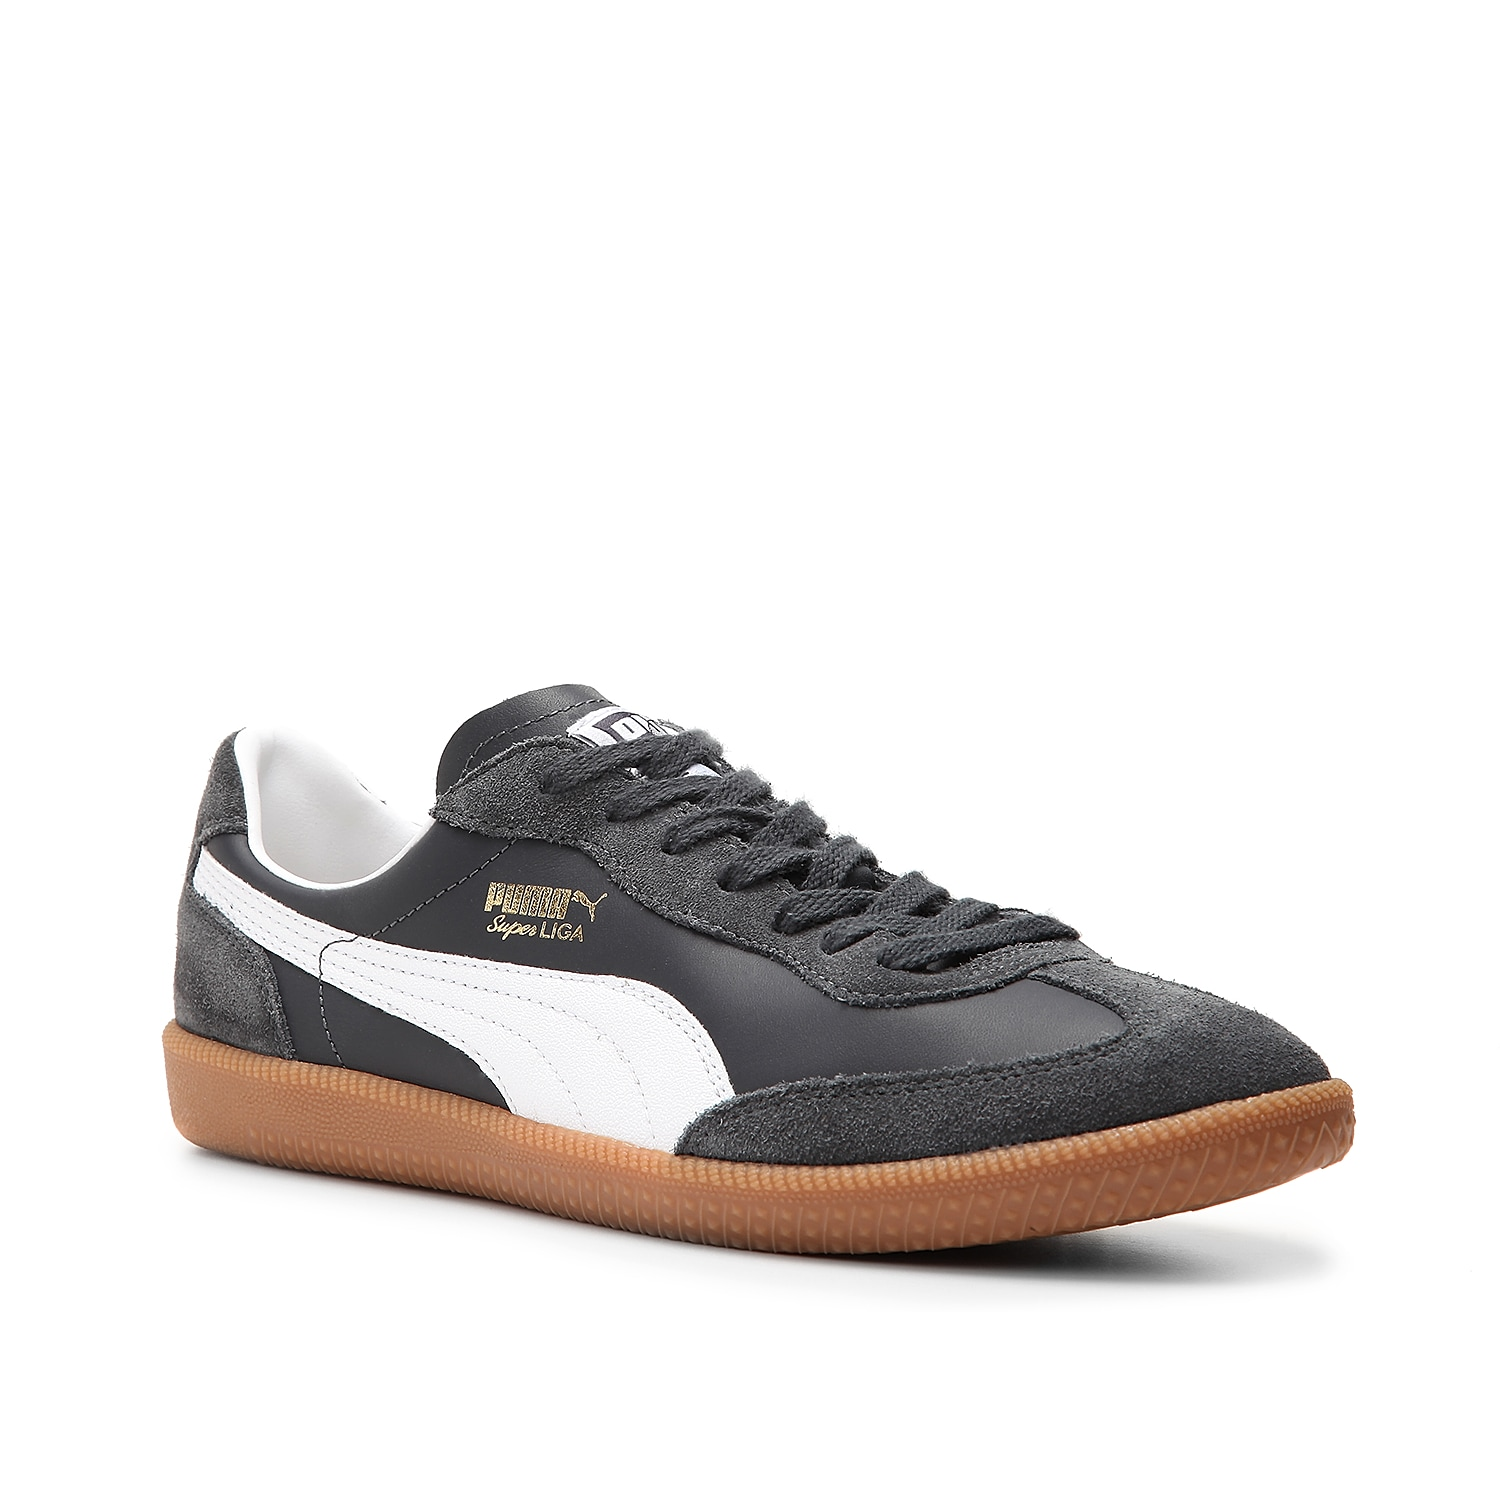 Simple classic style is what you will find in the men\\\'s Puma Super Liga suede sneaker. Well known for its indoor soccer style but versatile enough to play up any casual attire, this retro shoe is a must-have for laid back style both on and off the field.